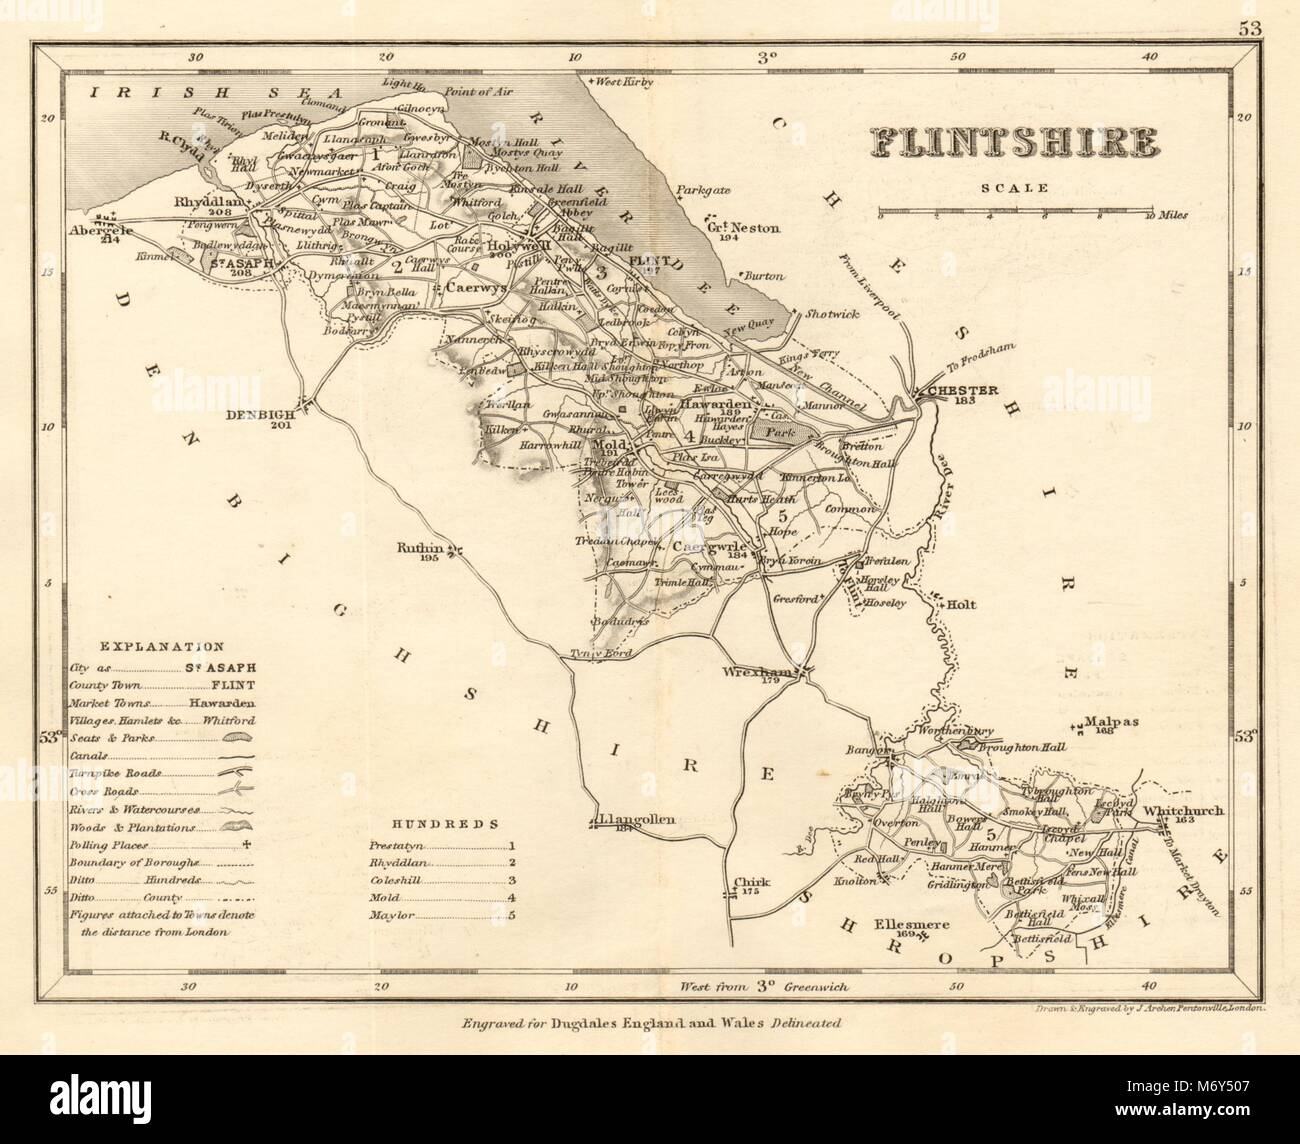 Buy Cheap Middlesex Map By Archer & Dugdale Europe Maps Seats Canals Polling Places C1845 Old